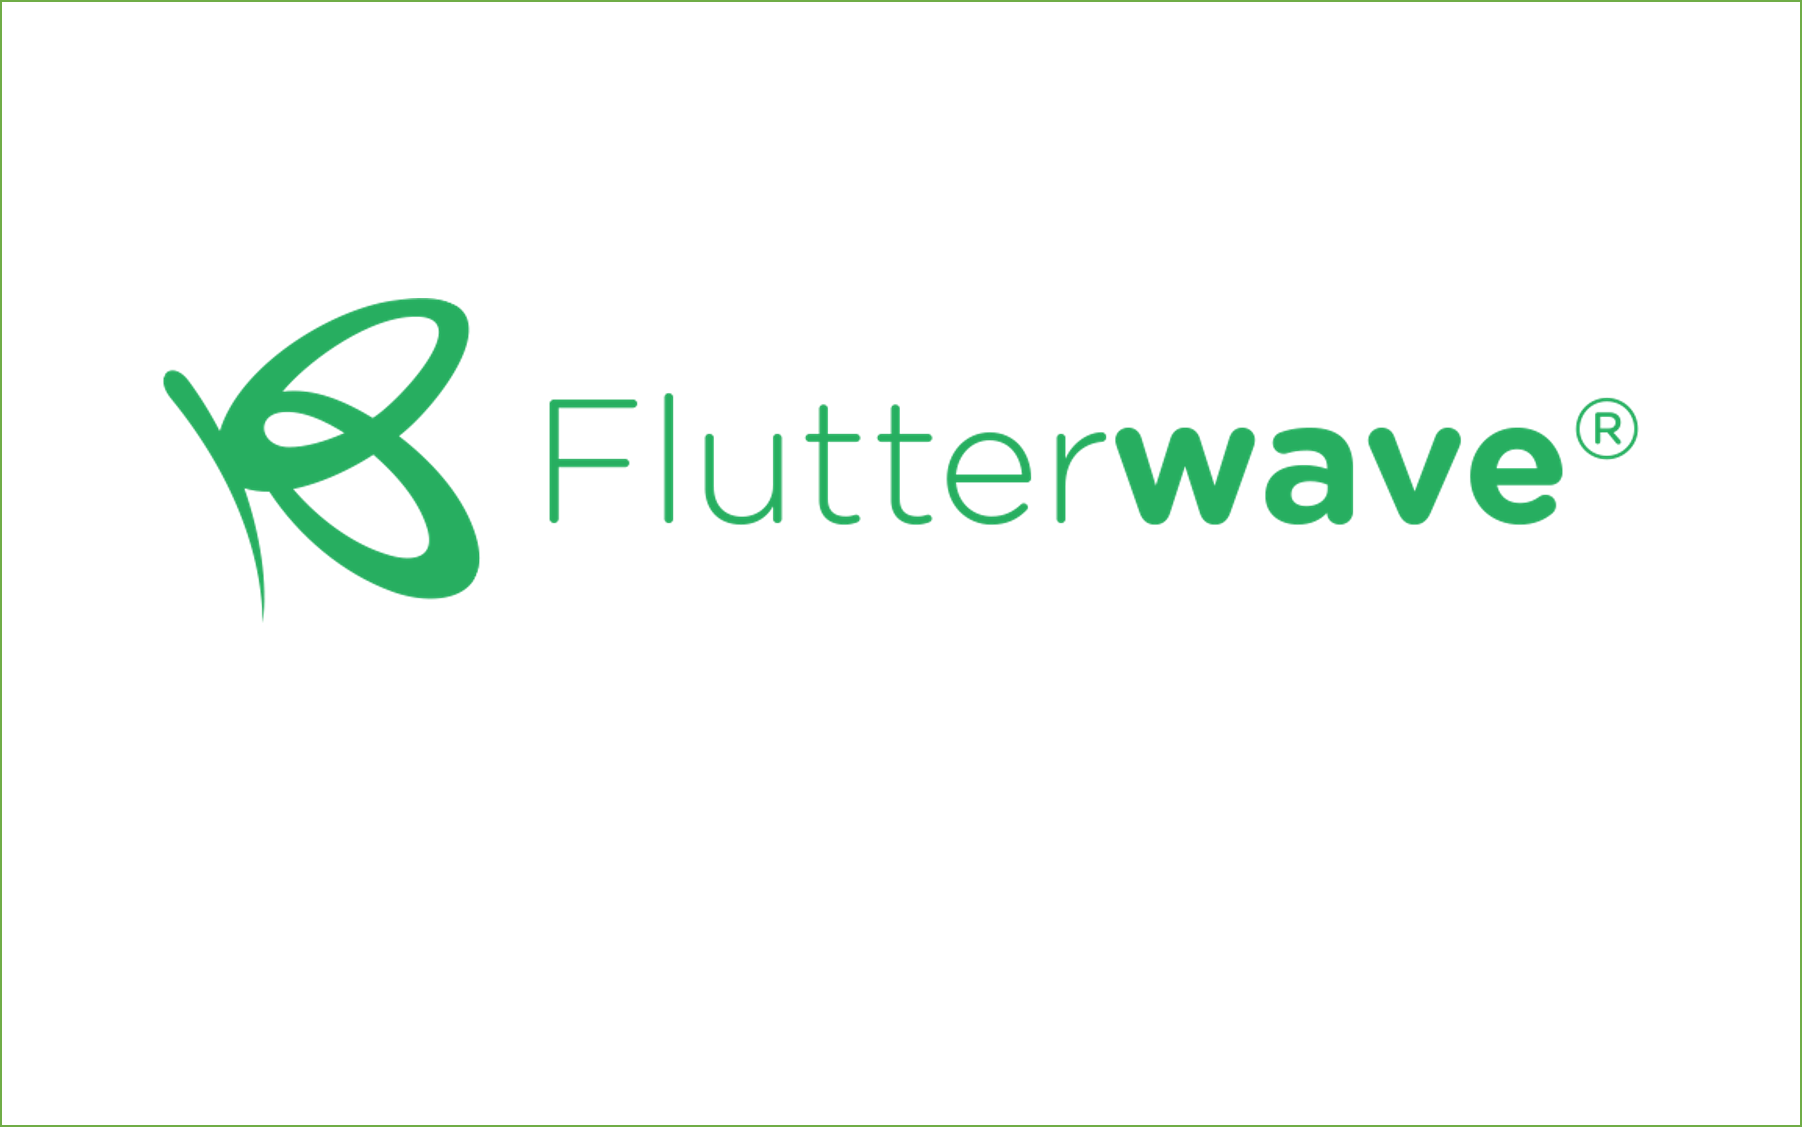 Flutterwave Barter As Egmont Plans To Expel Nigeria, What Alternatives Exist For International Payment?